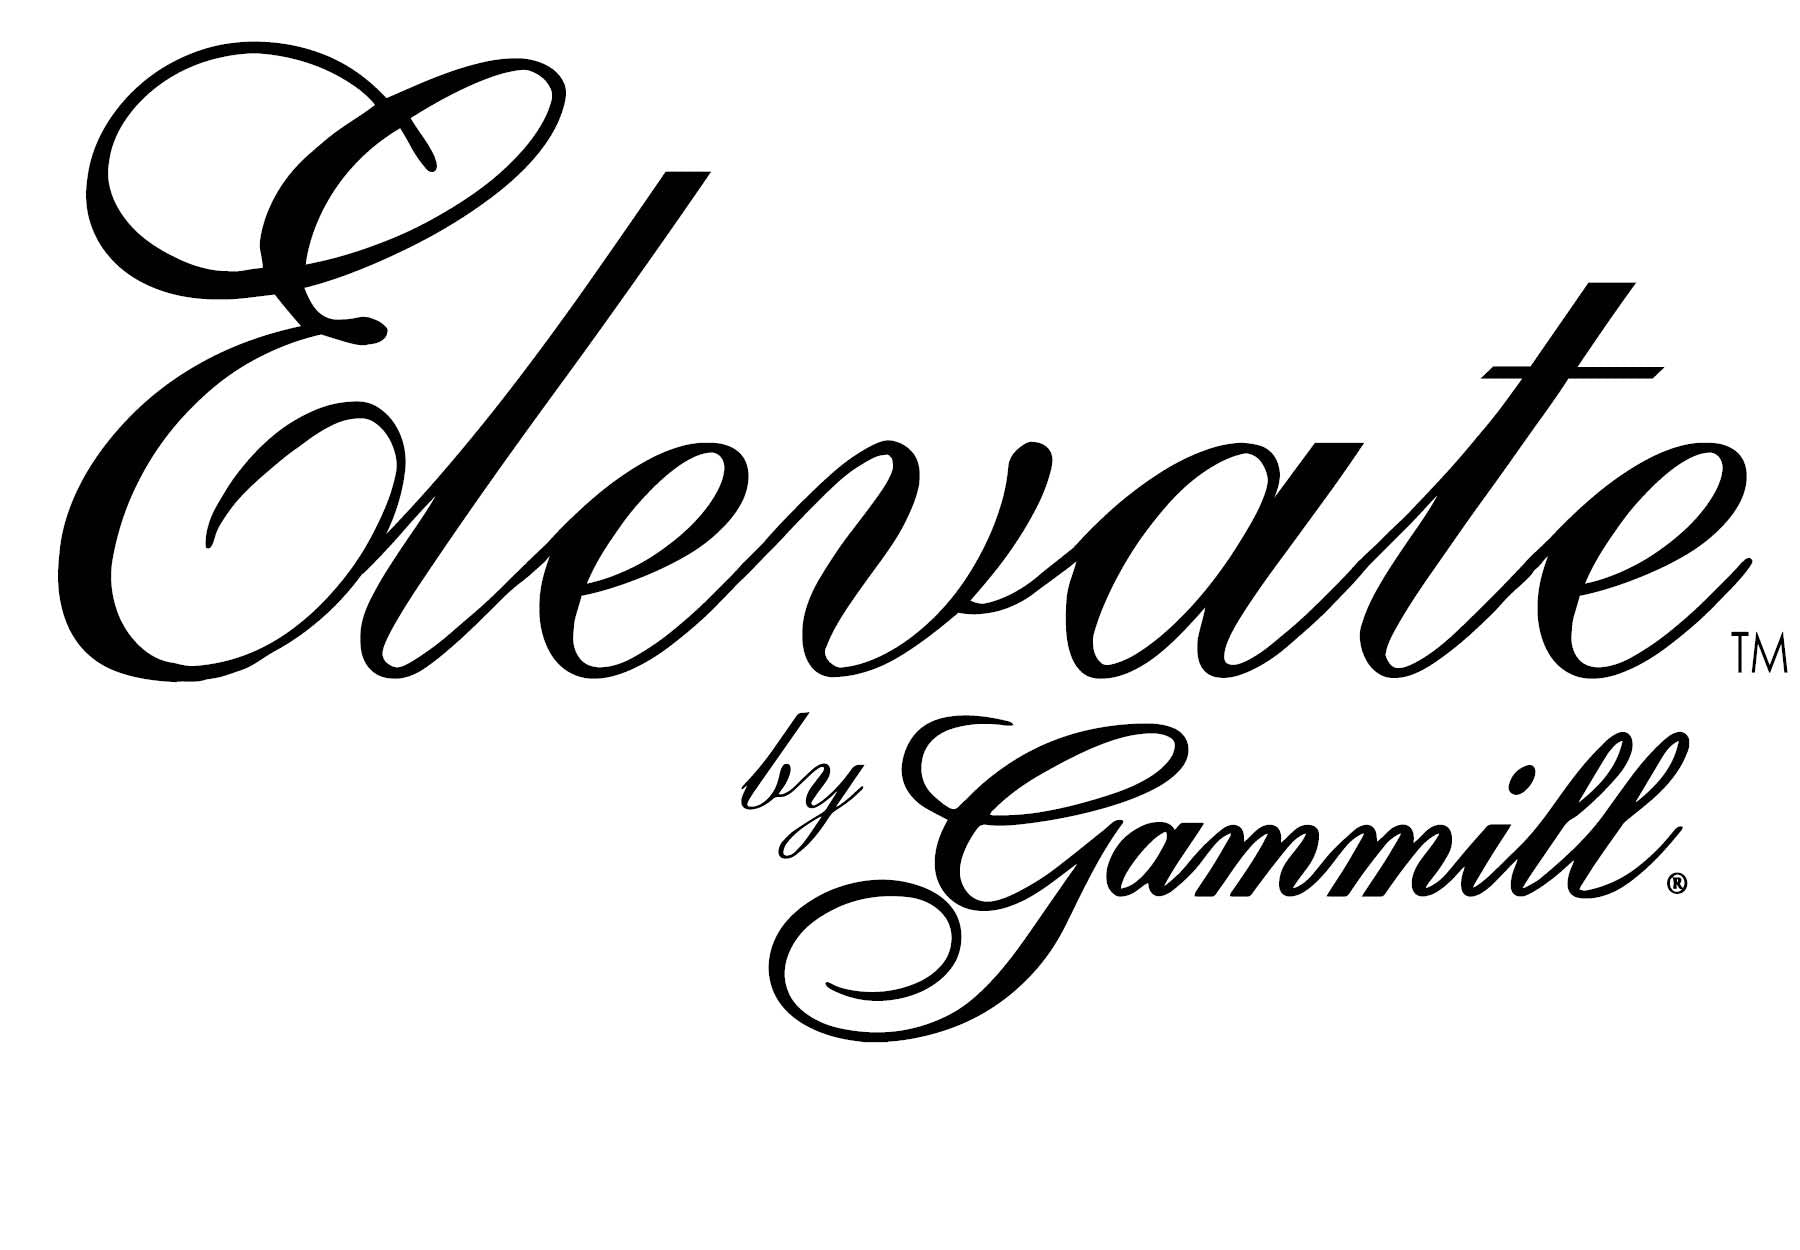 Elevate by Gammill